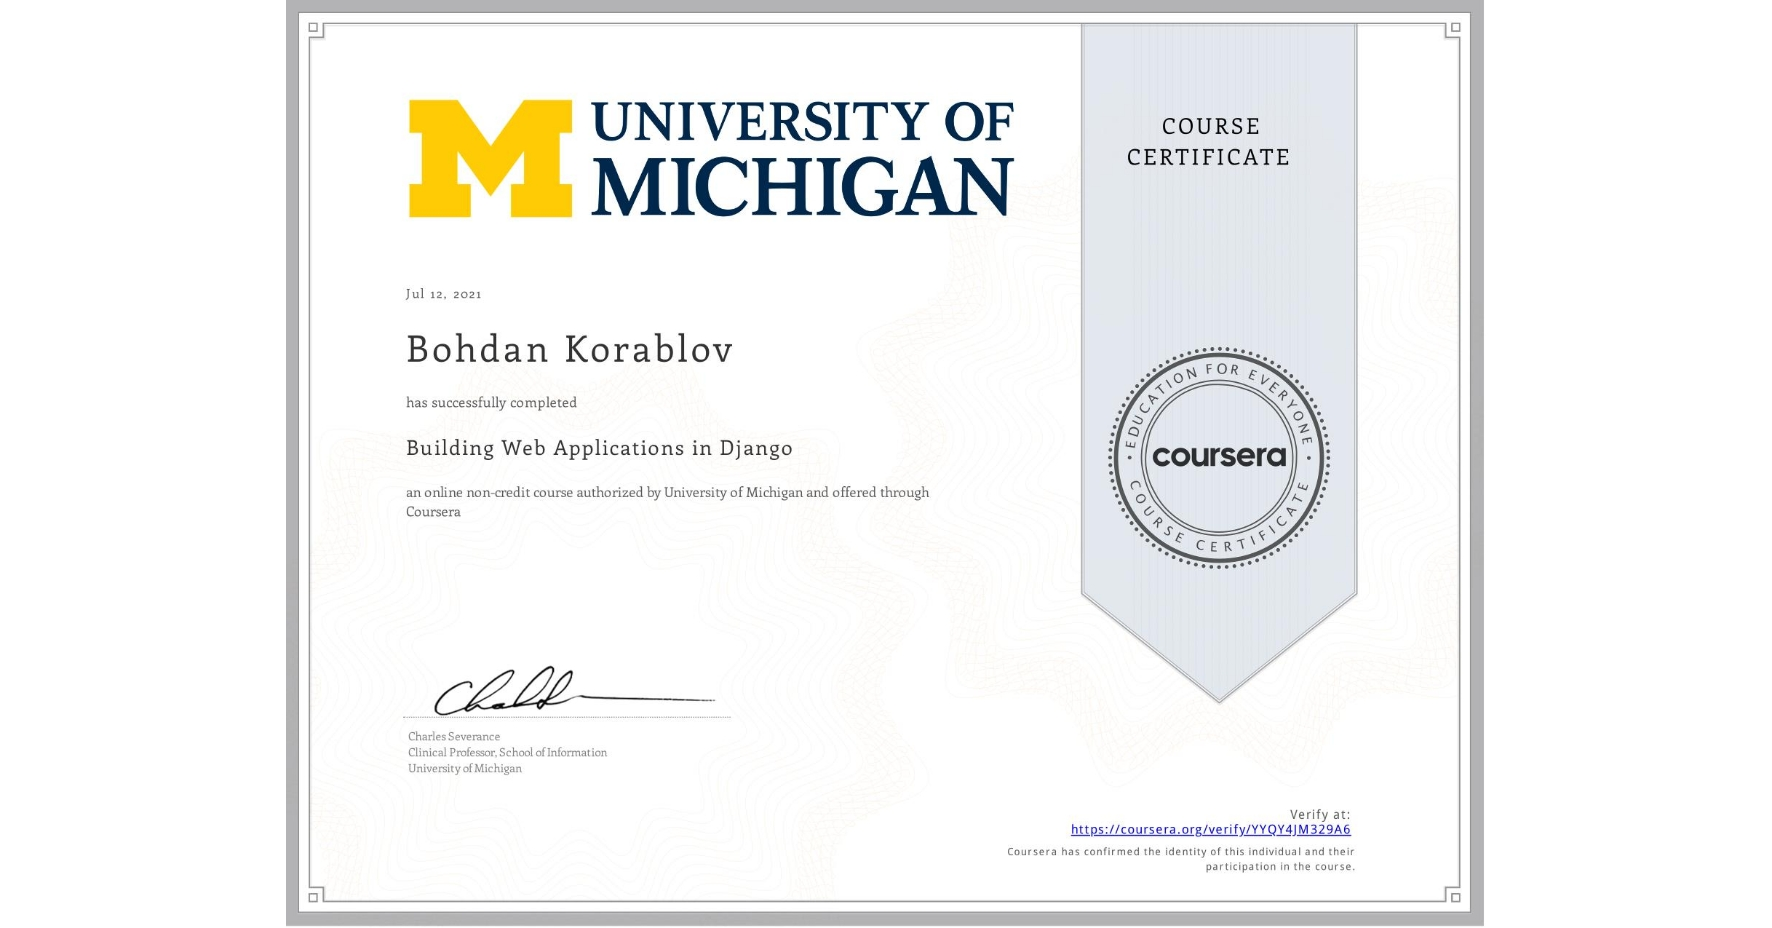 View certificate for Bohdan Korablov, Building Web Applications in Django, an online non-credit course authorized by University of Michigan and offered through Coursera